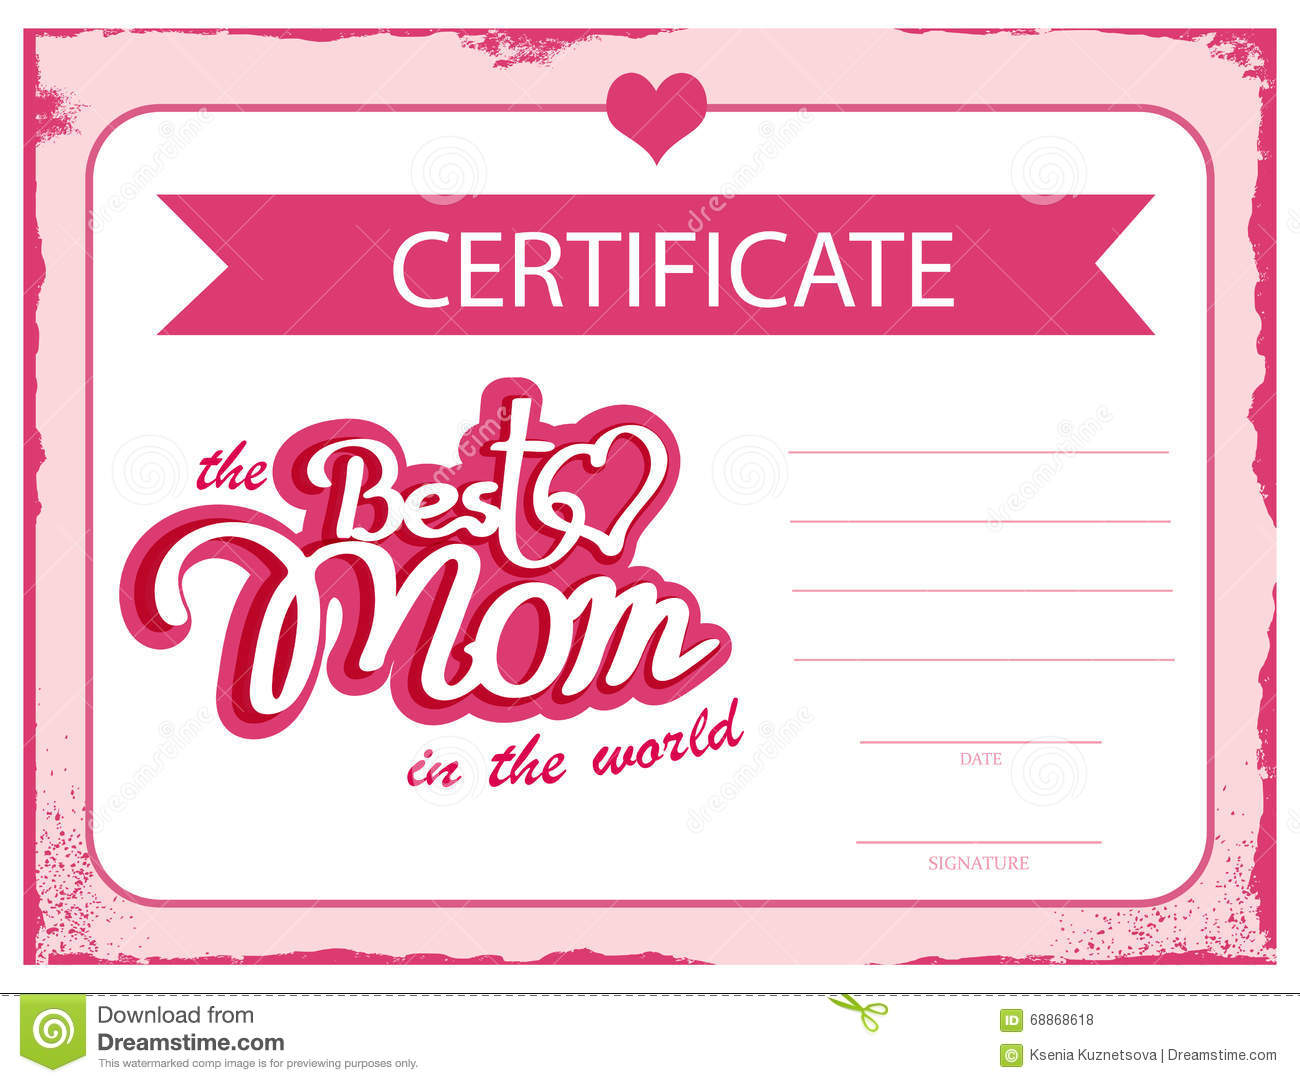 Template vector certificate best mom in the world a gift template vector certificate best mom in the world a gift certificate for mothers day a diploma template royalty free vector alramifo Images